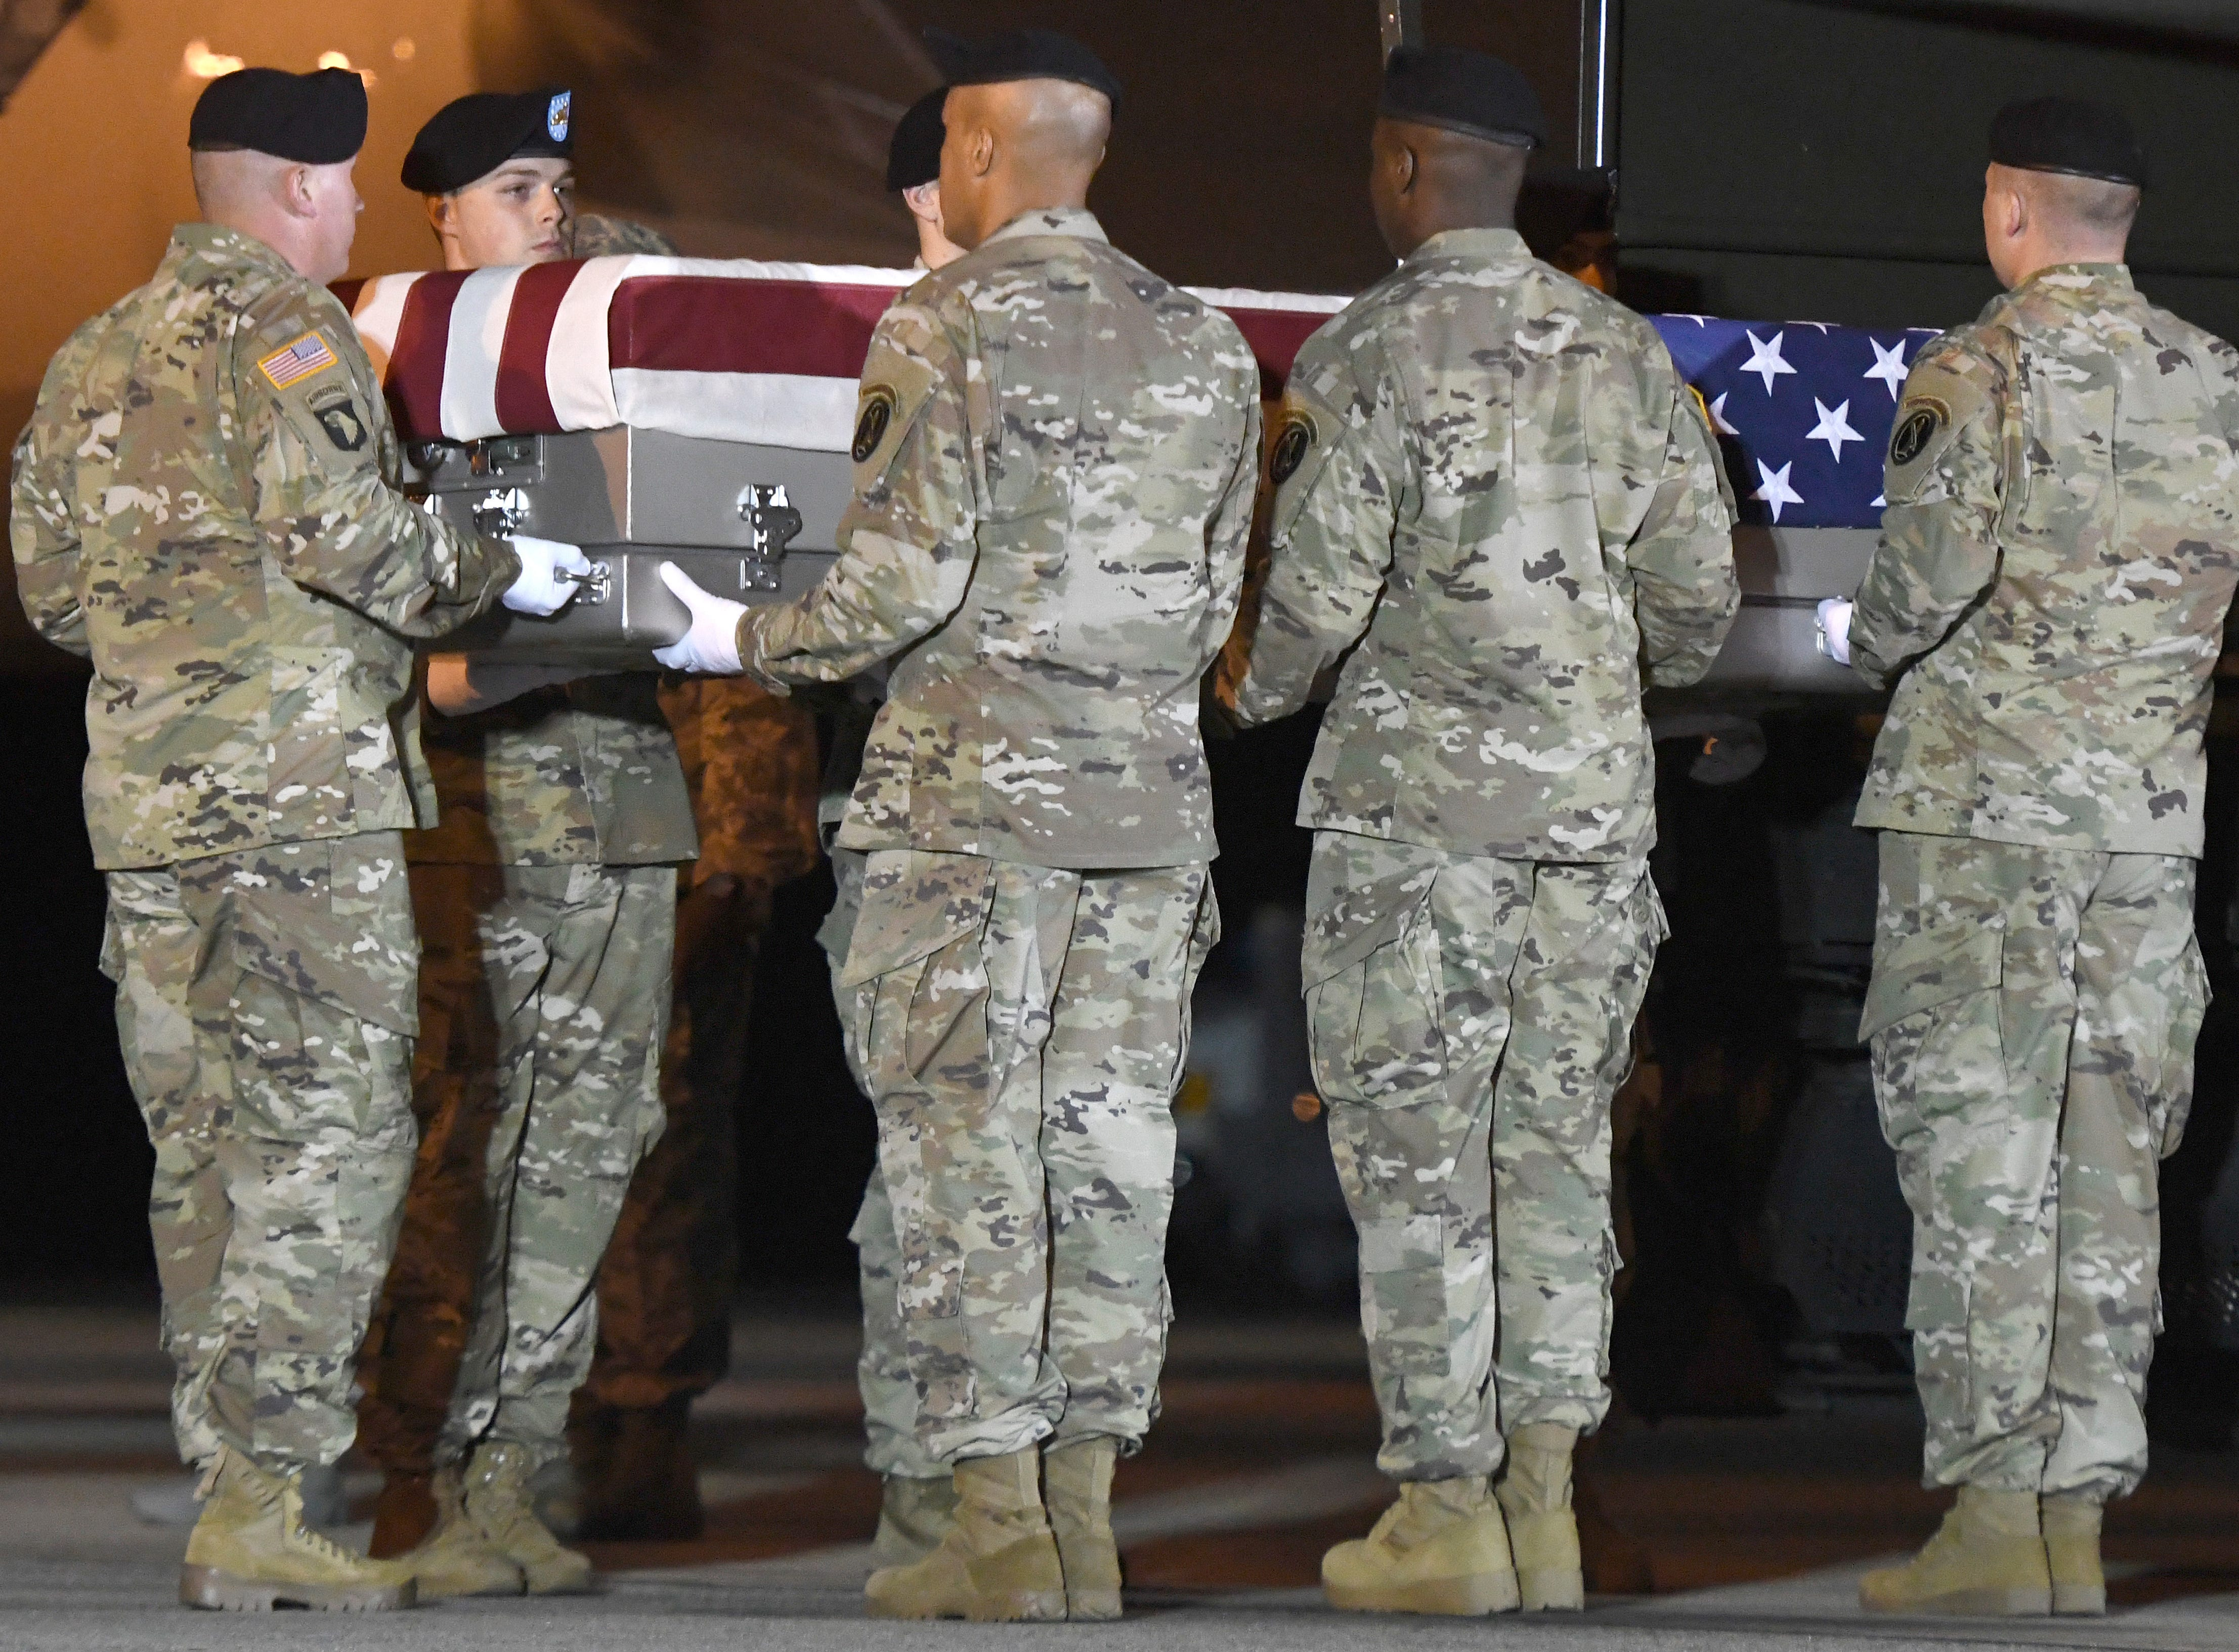 An Army carry team moves a transfer case containing the remains of Sgt. James A. Slape at Dover Air Force Base, Del., on Saturday, Oct. 6, 2018. According to the Department of Defense, Slape, 23, of Morehead City, N.C., died Oct. 4, 2018 in Helmand province, Afghanistan of injuries sustained from an improvised explosive device.